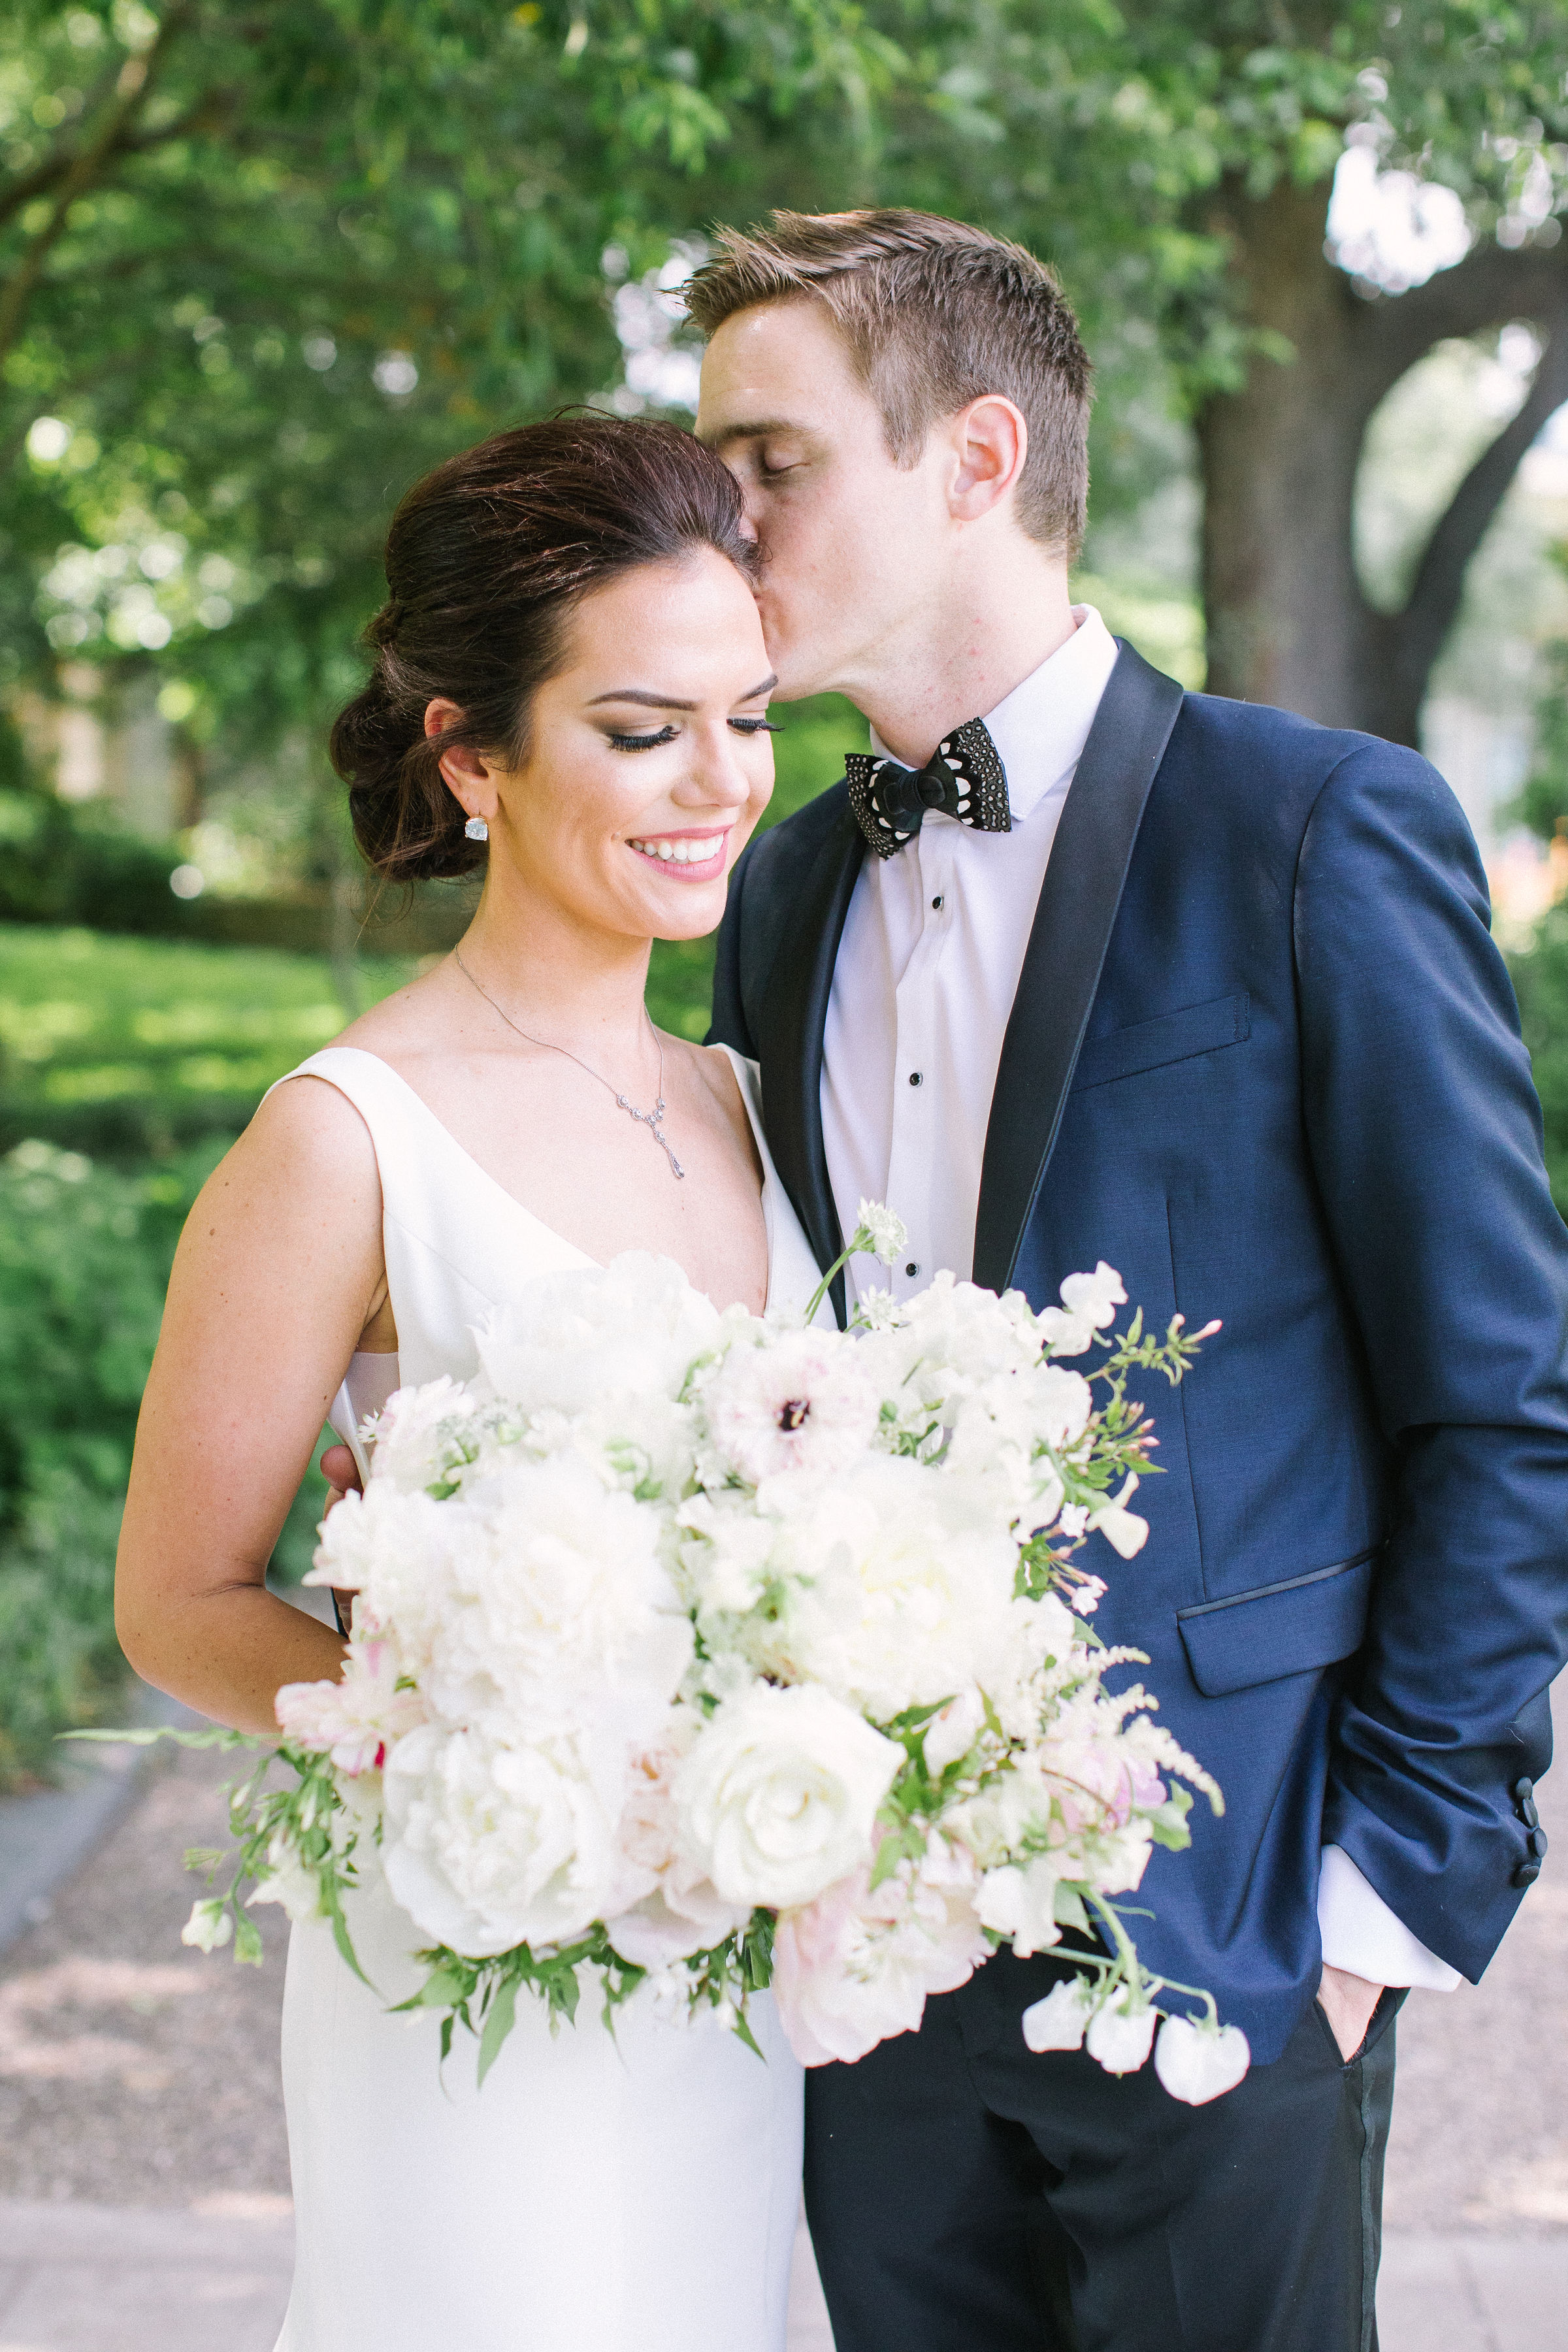 Erin-and-Jimmy-Ivory-and-Vine-Weddings.jpg